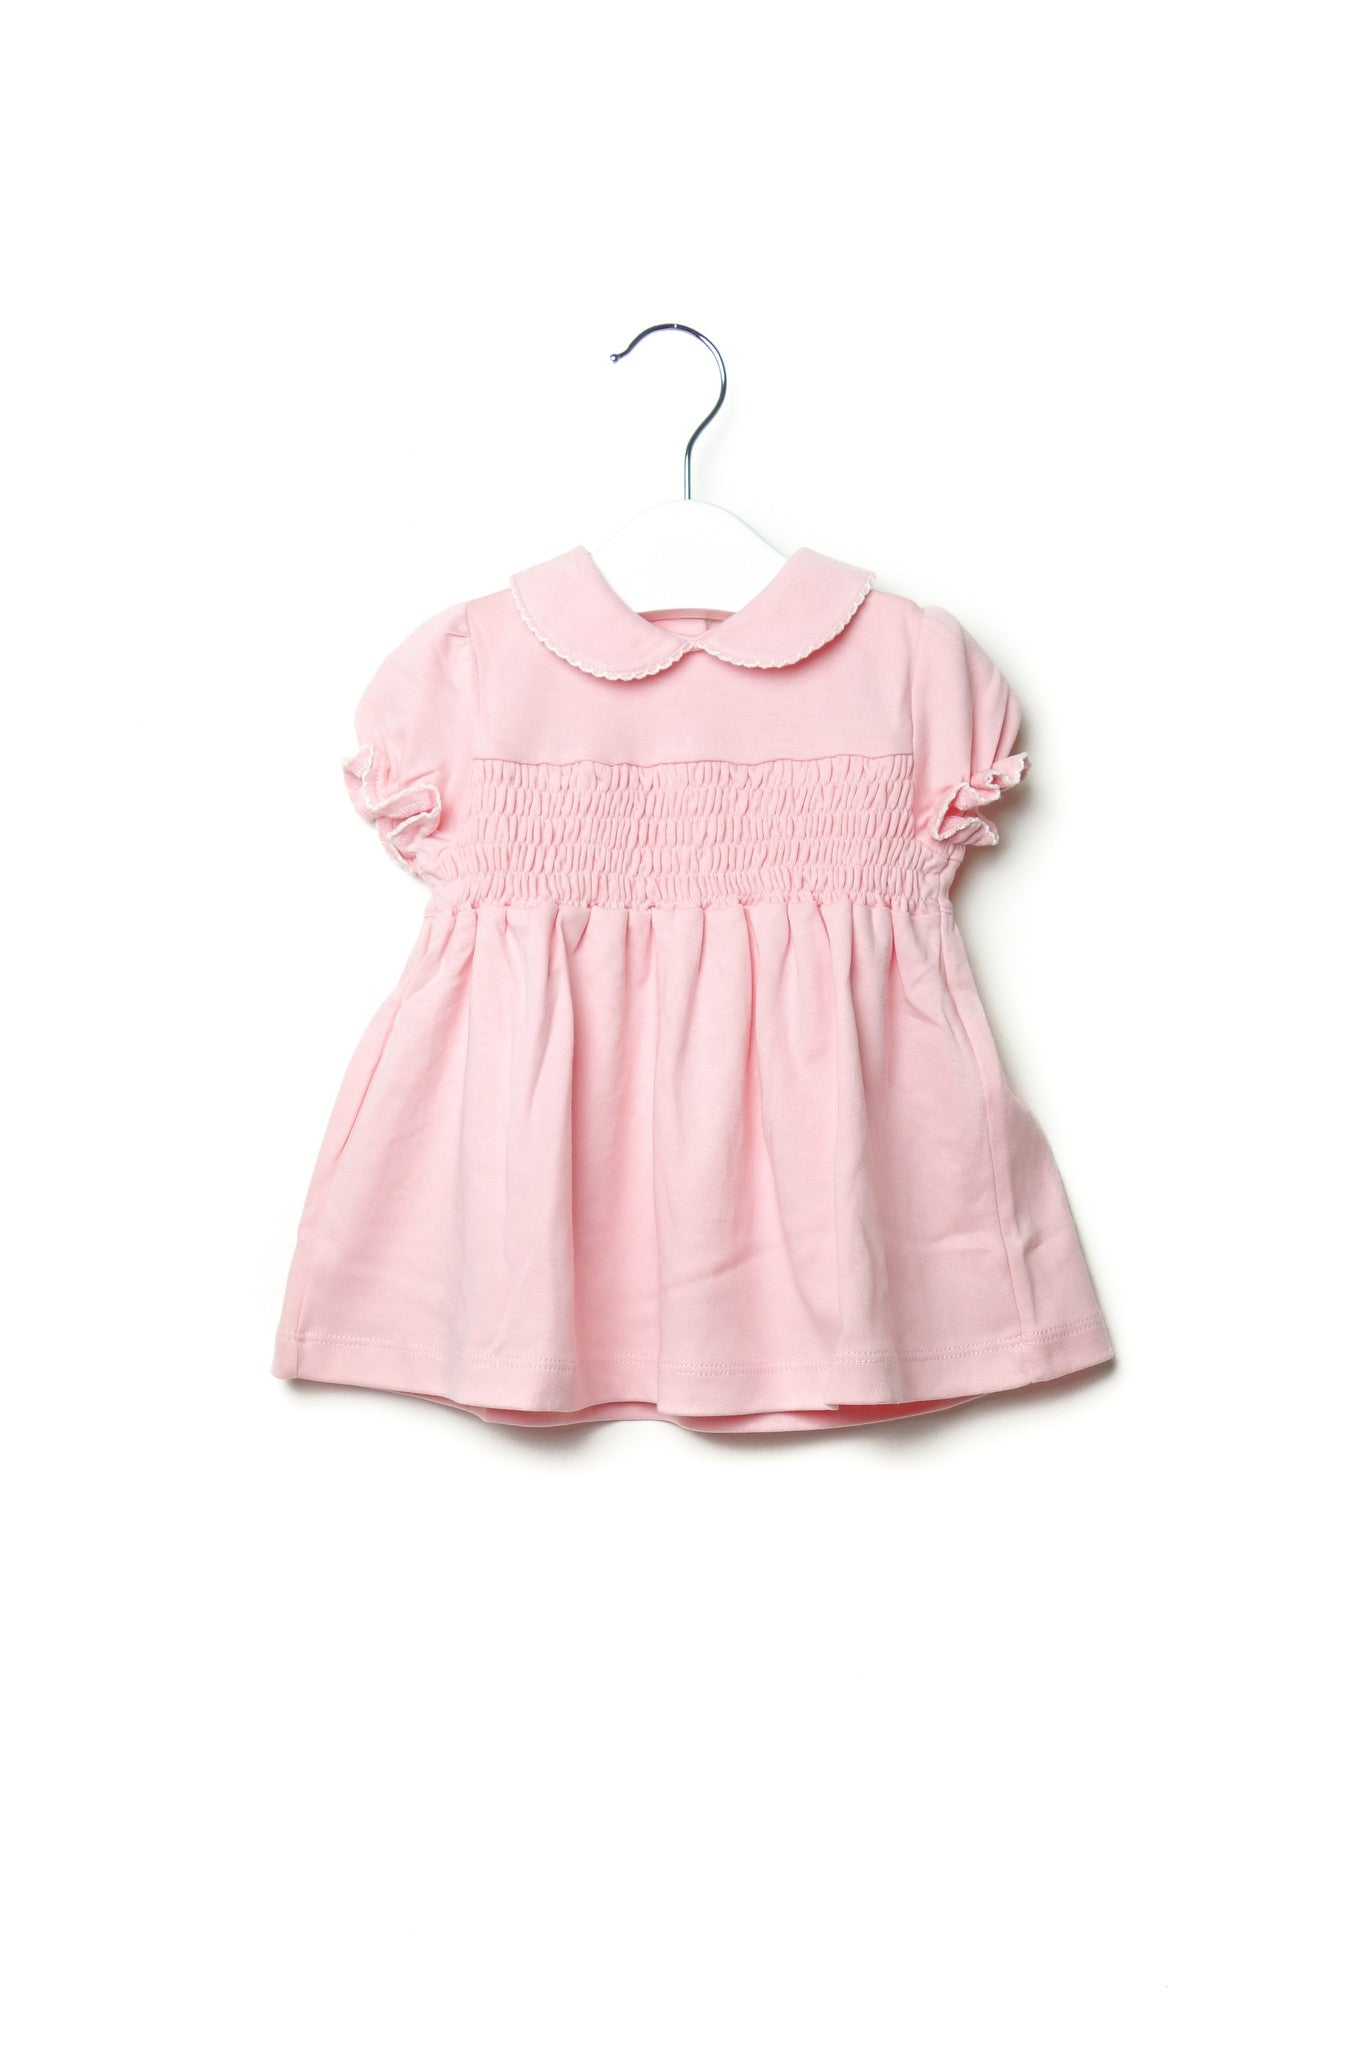 10001688 Organic Family Baby~Dress 9-12M at Retykle